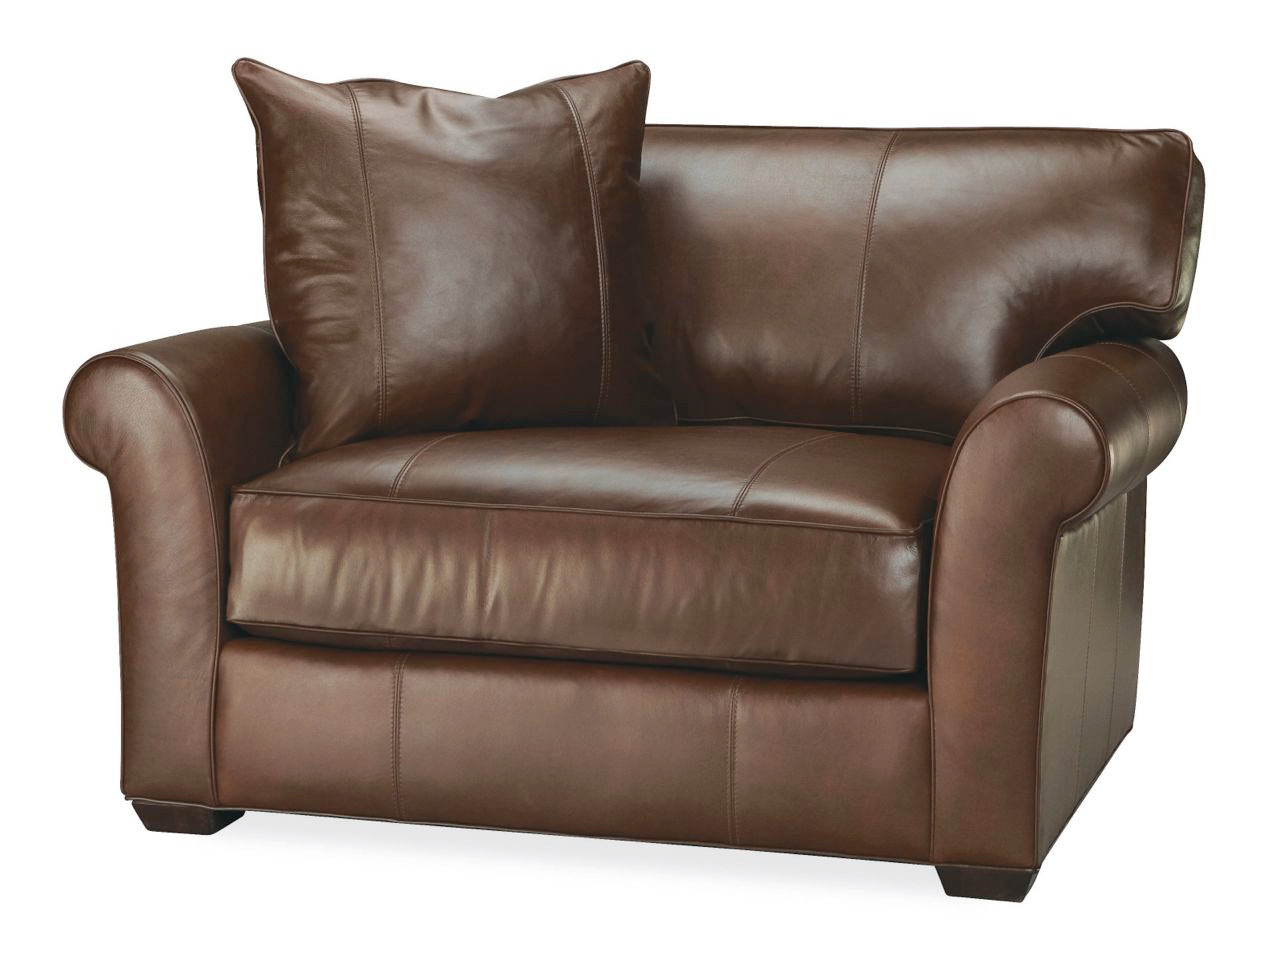 Jessie Leather Chair And A Half Leather Armchairs Living